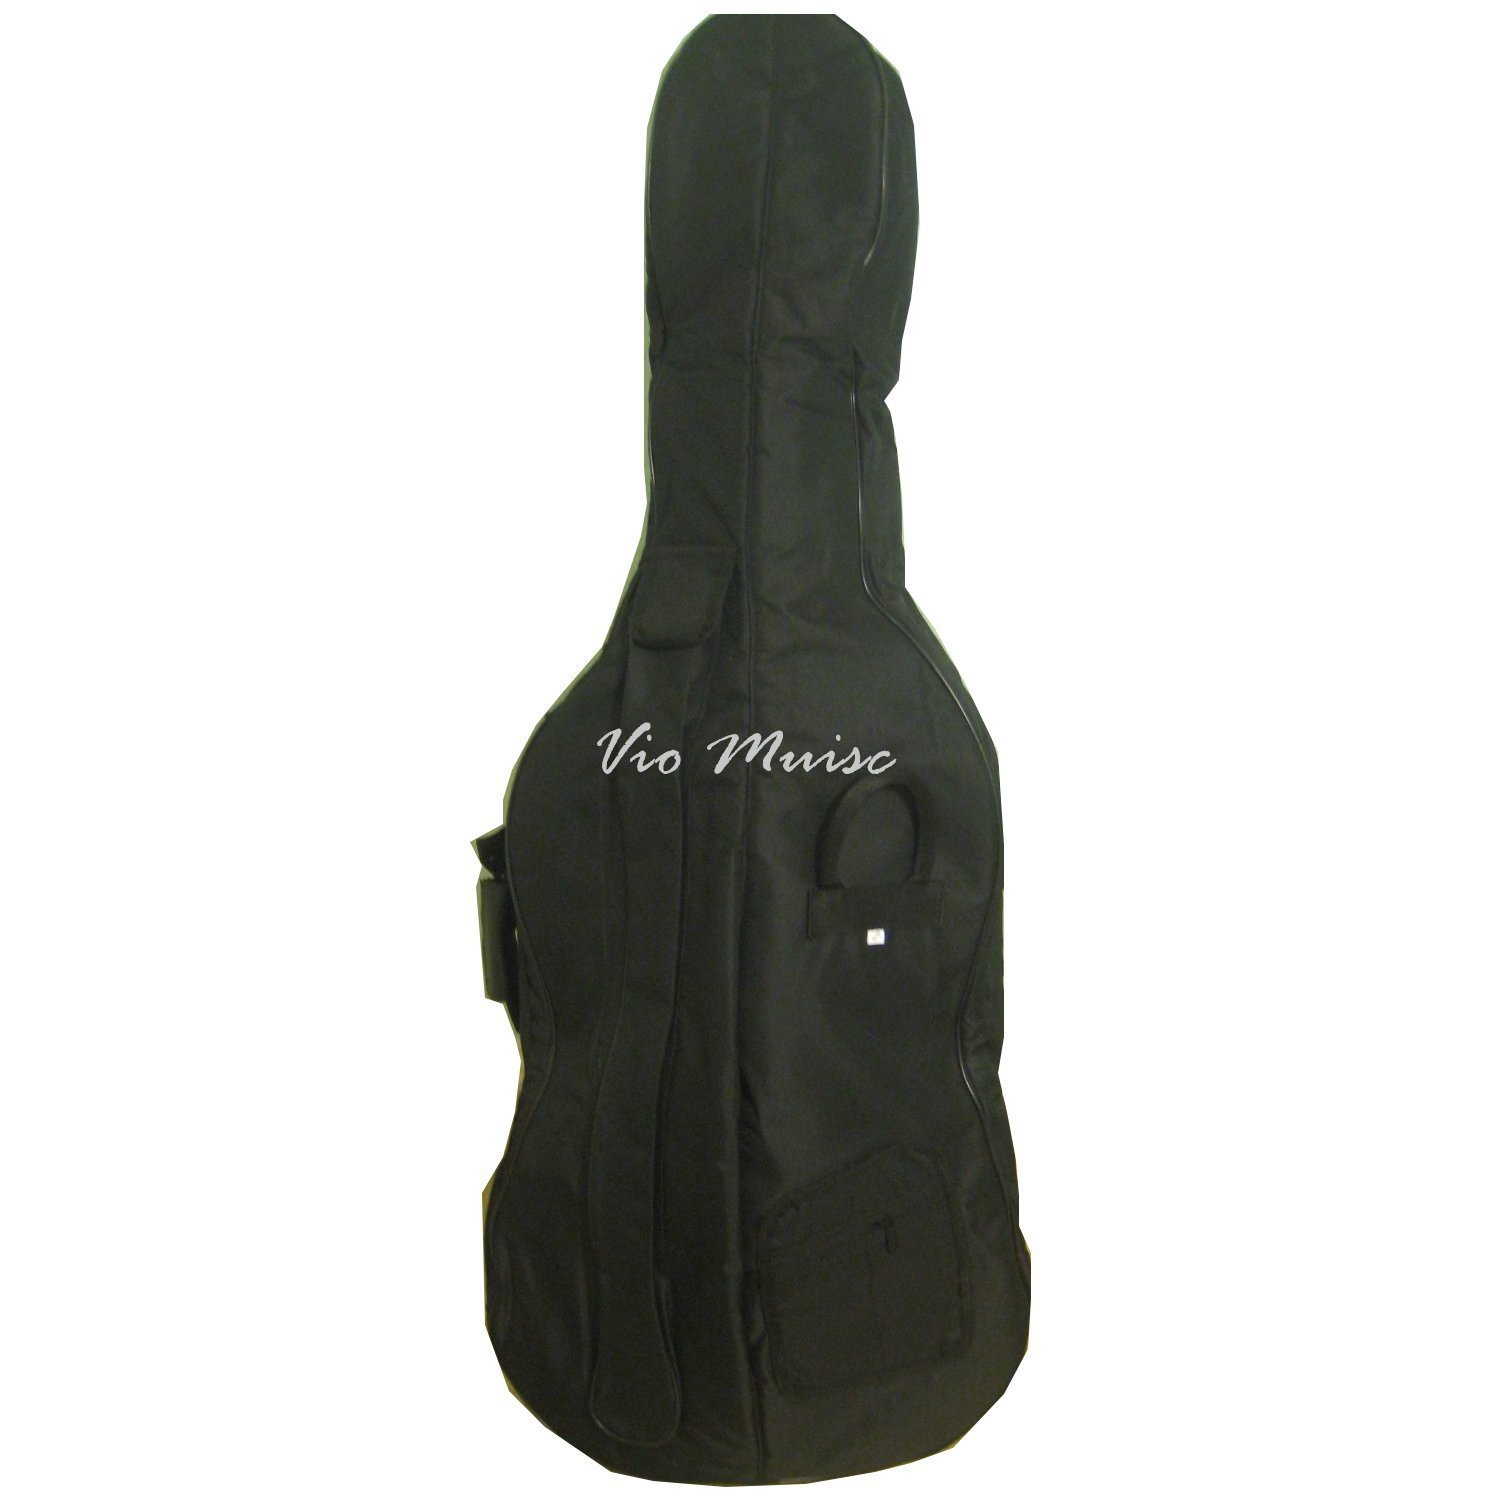 3/4 Padded Cello Bag, Durable, High Strength